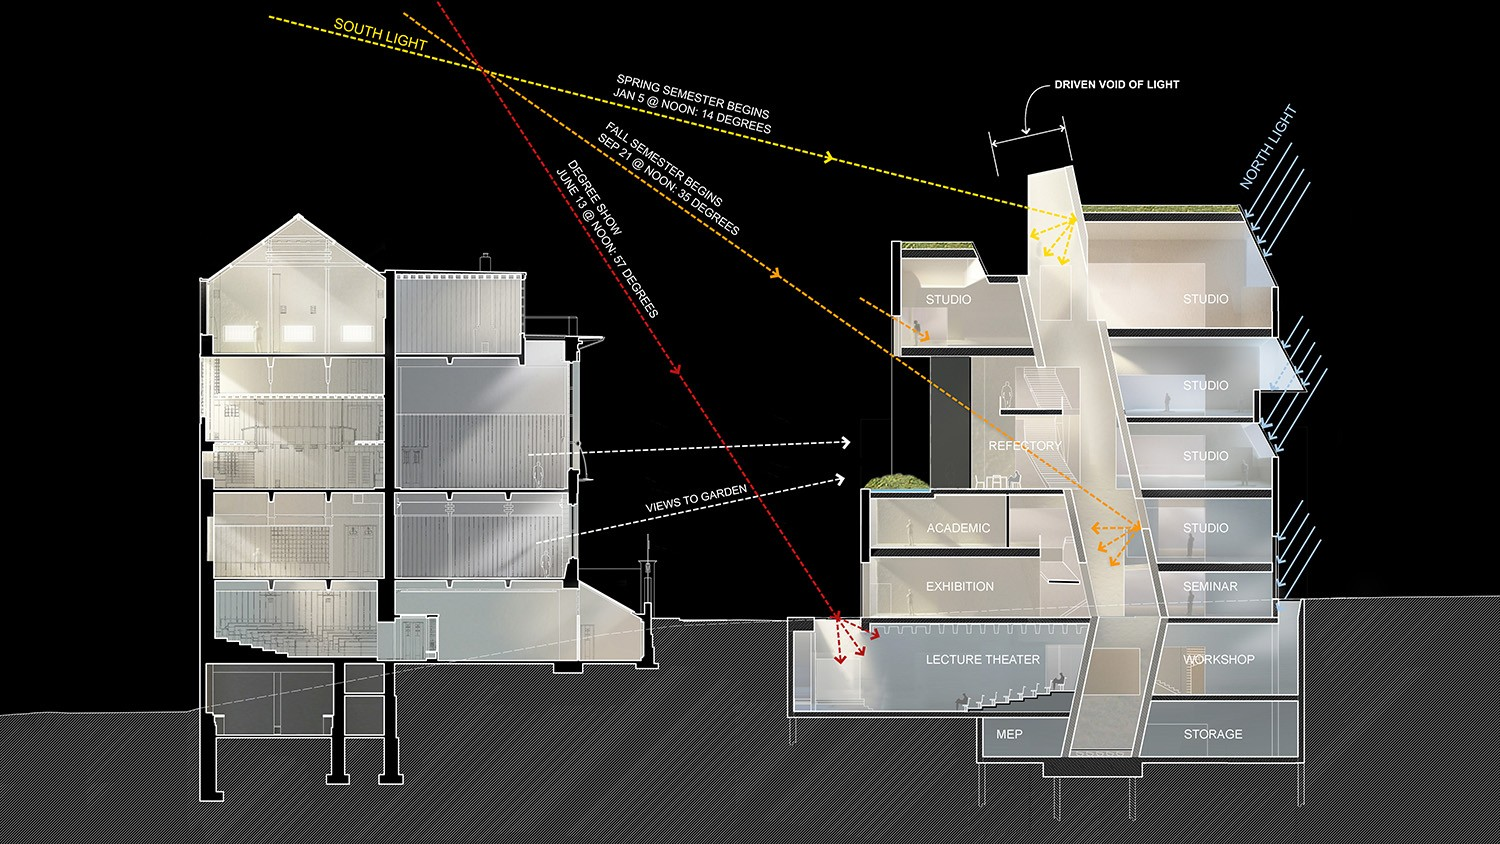 https://stevenholl.sfo2.digitaloceanspaces.com/uploads/projects/project-images/StevenHollArchitects_Glasgow_DaylightSectionDiagram_WH.jpg